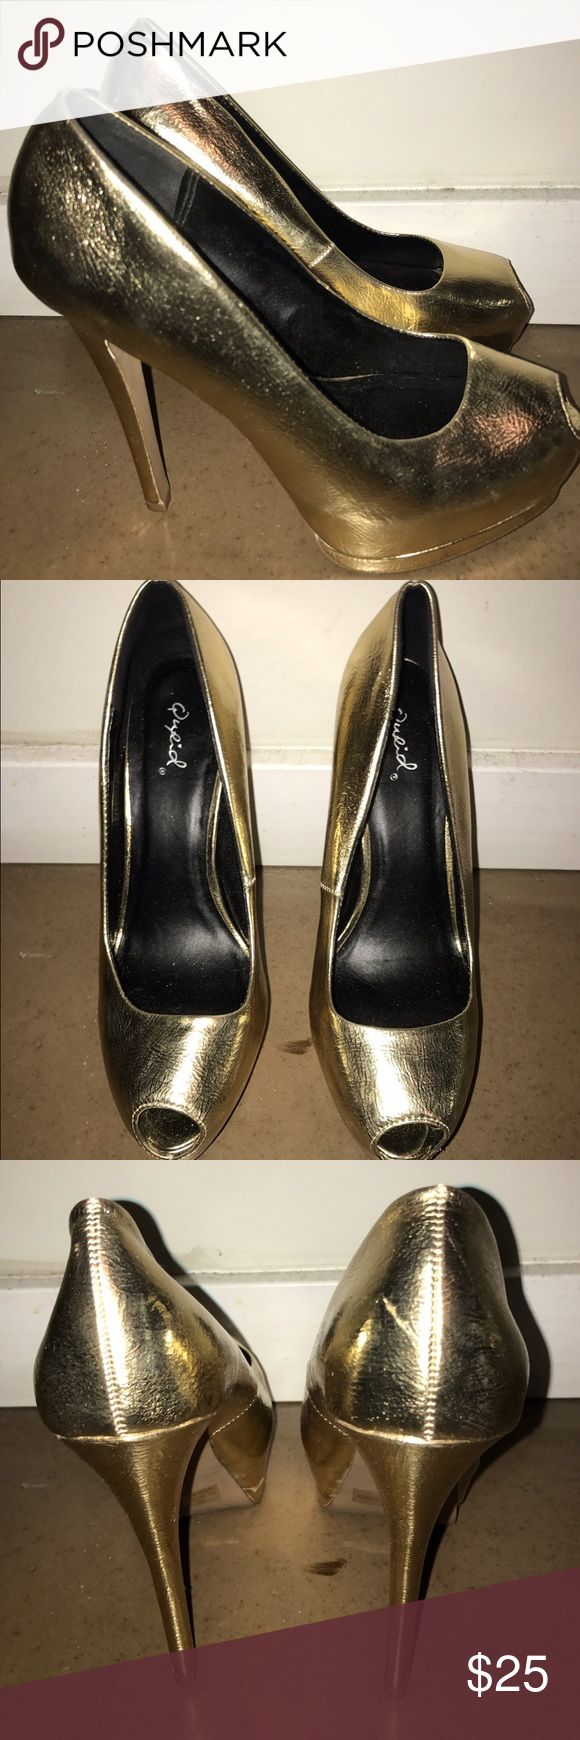 Qupid Gold Peep toe Heels Qupid Gold Peep Toe Heels. Worn twice!! Good Condition. These are either a size 7.5 or 8...will update later!! Qupid Shoes Heels